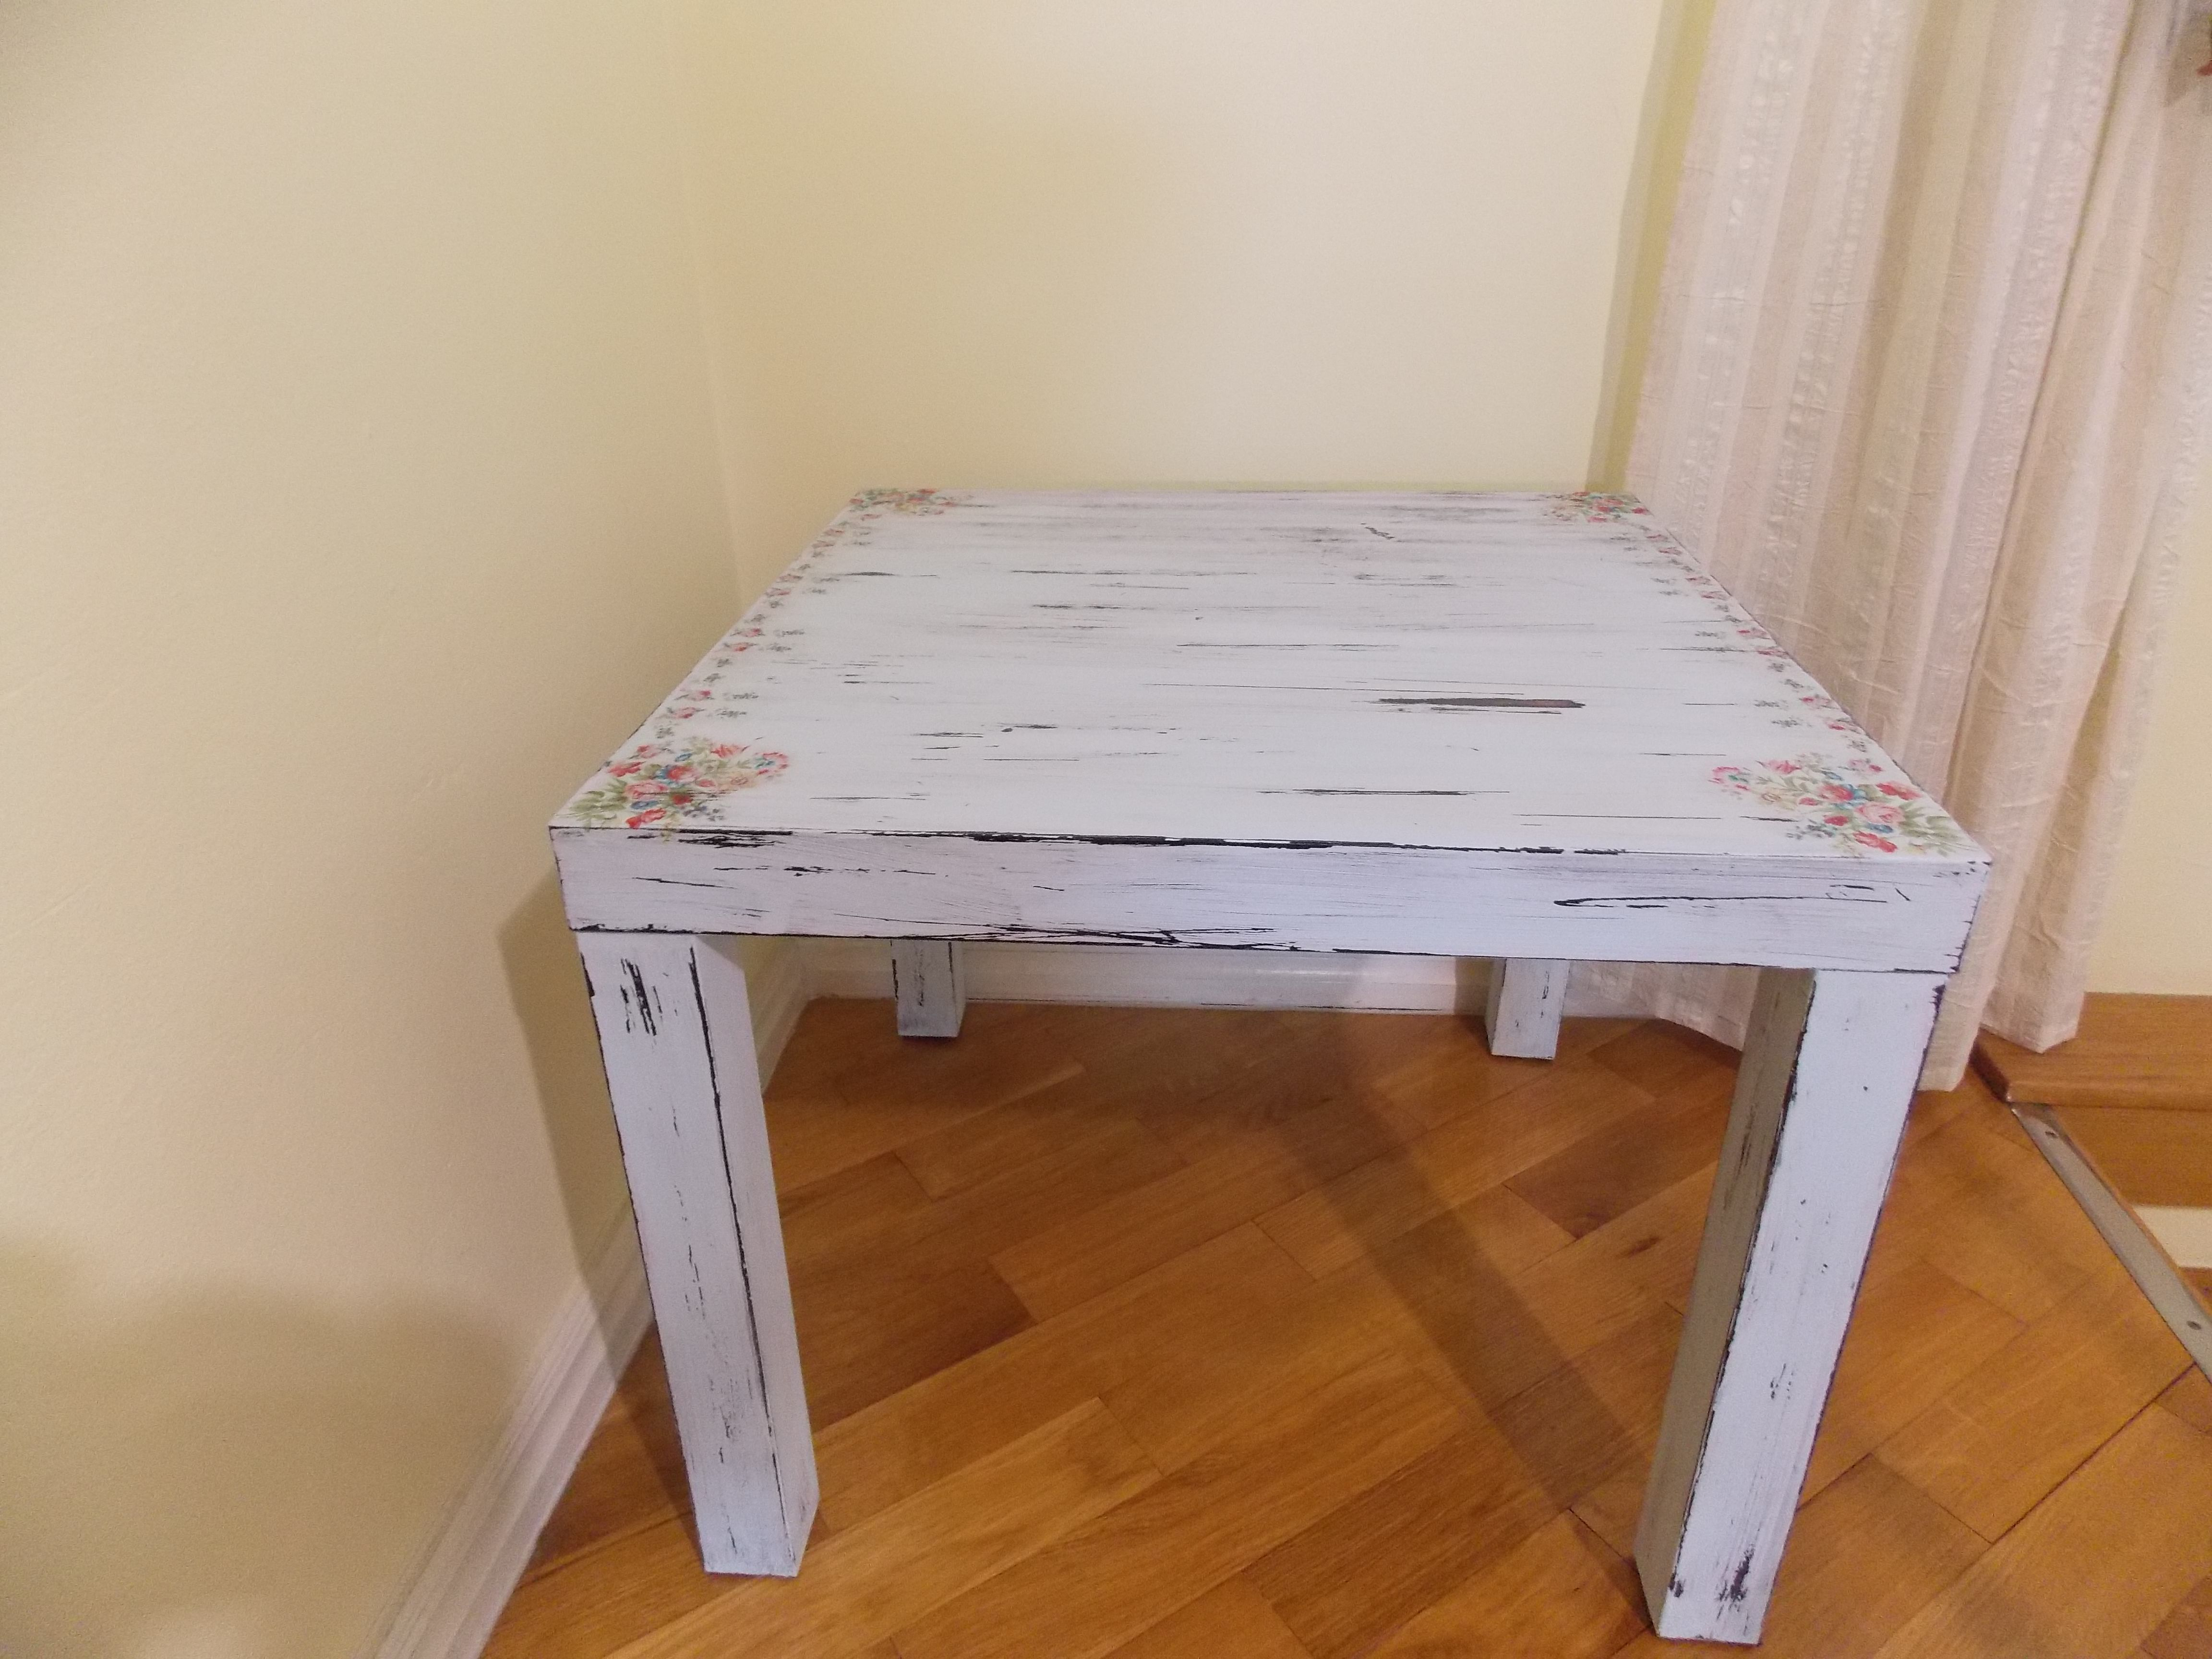 Vintage Ikea Furniture ikea table, shabby chic, distressed furniture, diy table